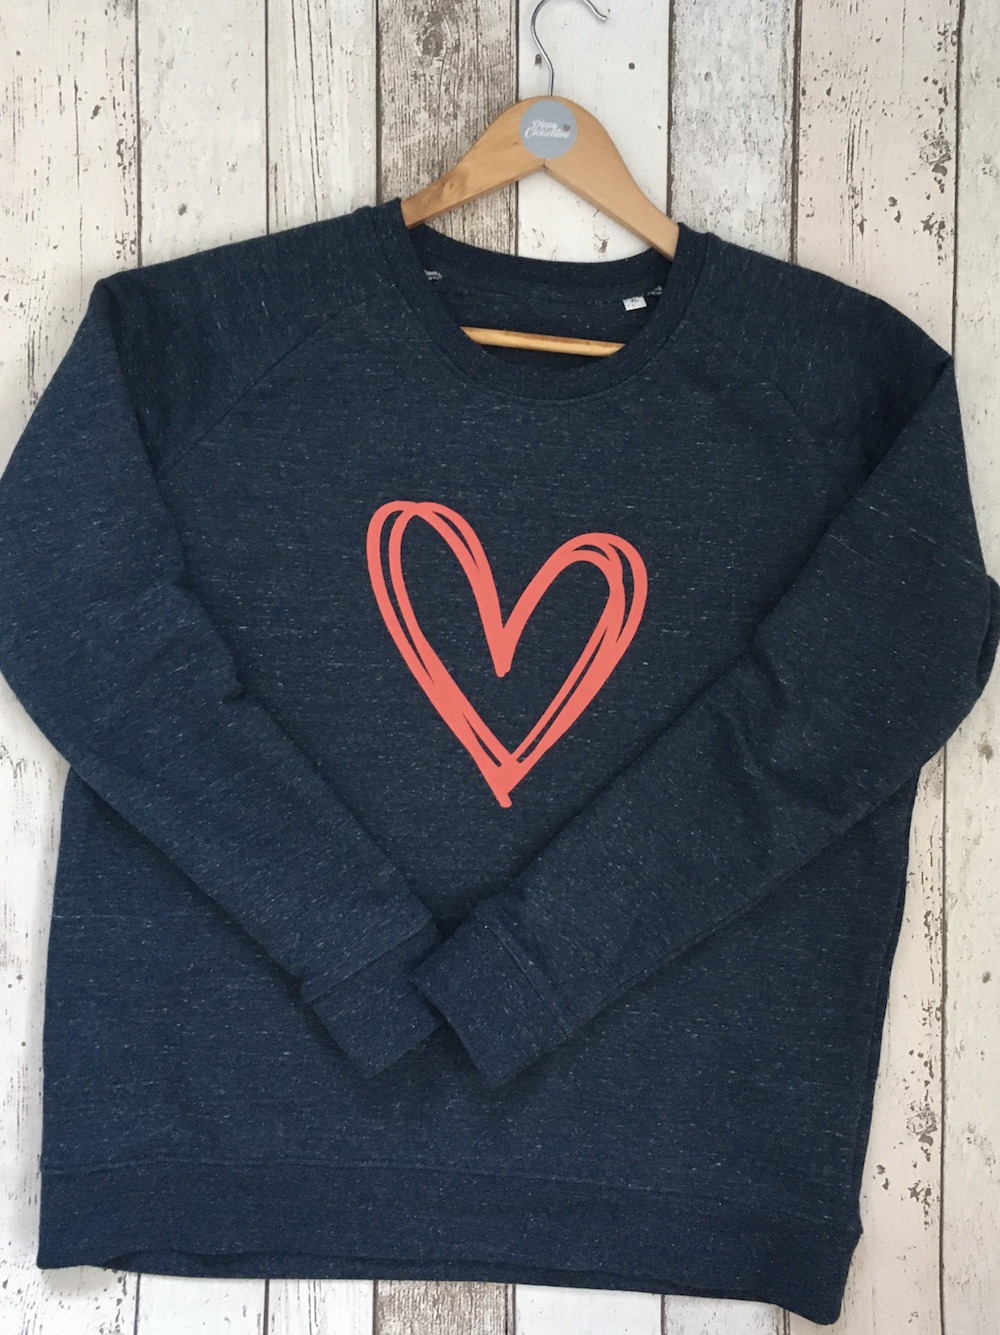 Scribble Heart Super Soft Slim Fit Sweatshirt -Heather Denim And Coral